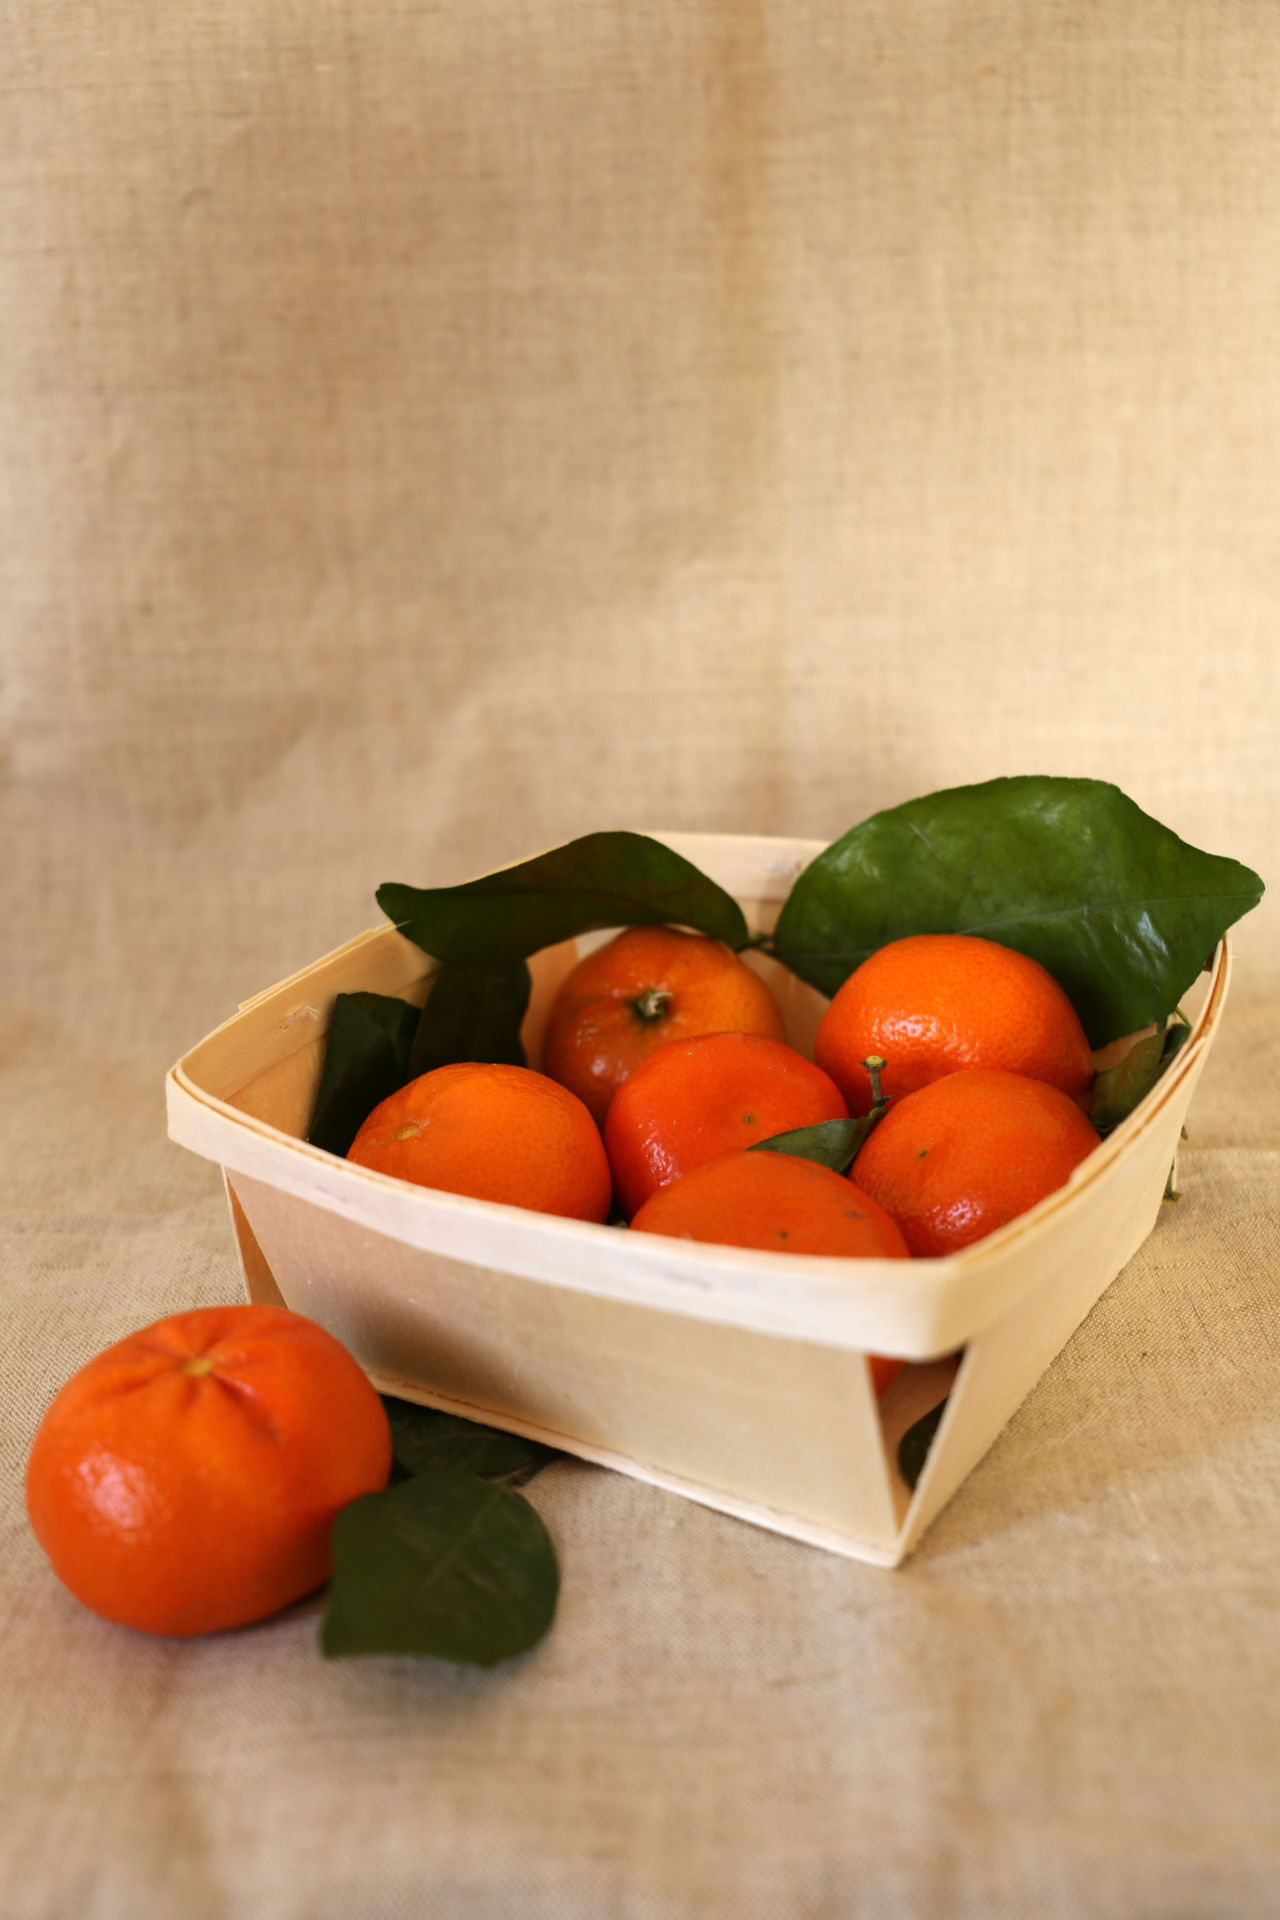 Bowl Canvas Close-up Day Food Freshness Fruit Healthy Eating Leaf Mandarin Mandarins No People Orange Quality Ready-to-eat Still Life Still Life Photography StillLifePhotography Wood - Material